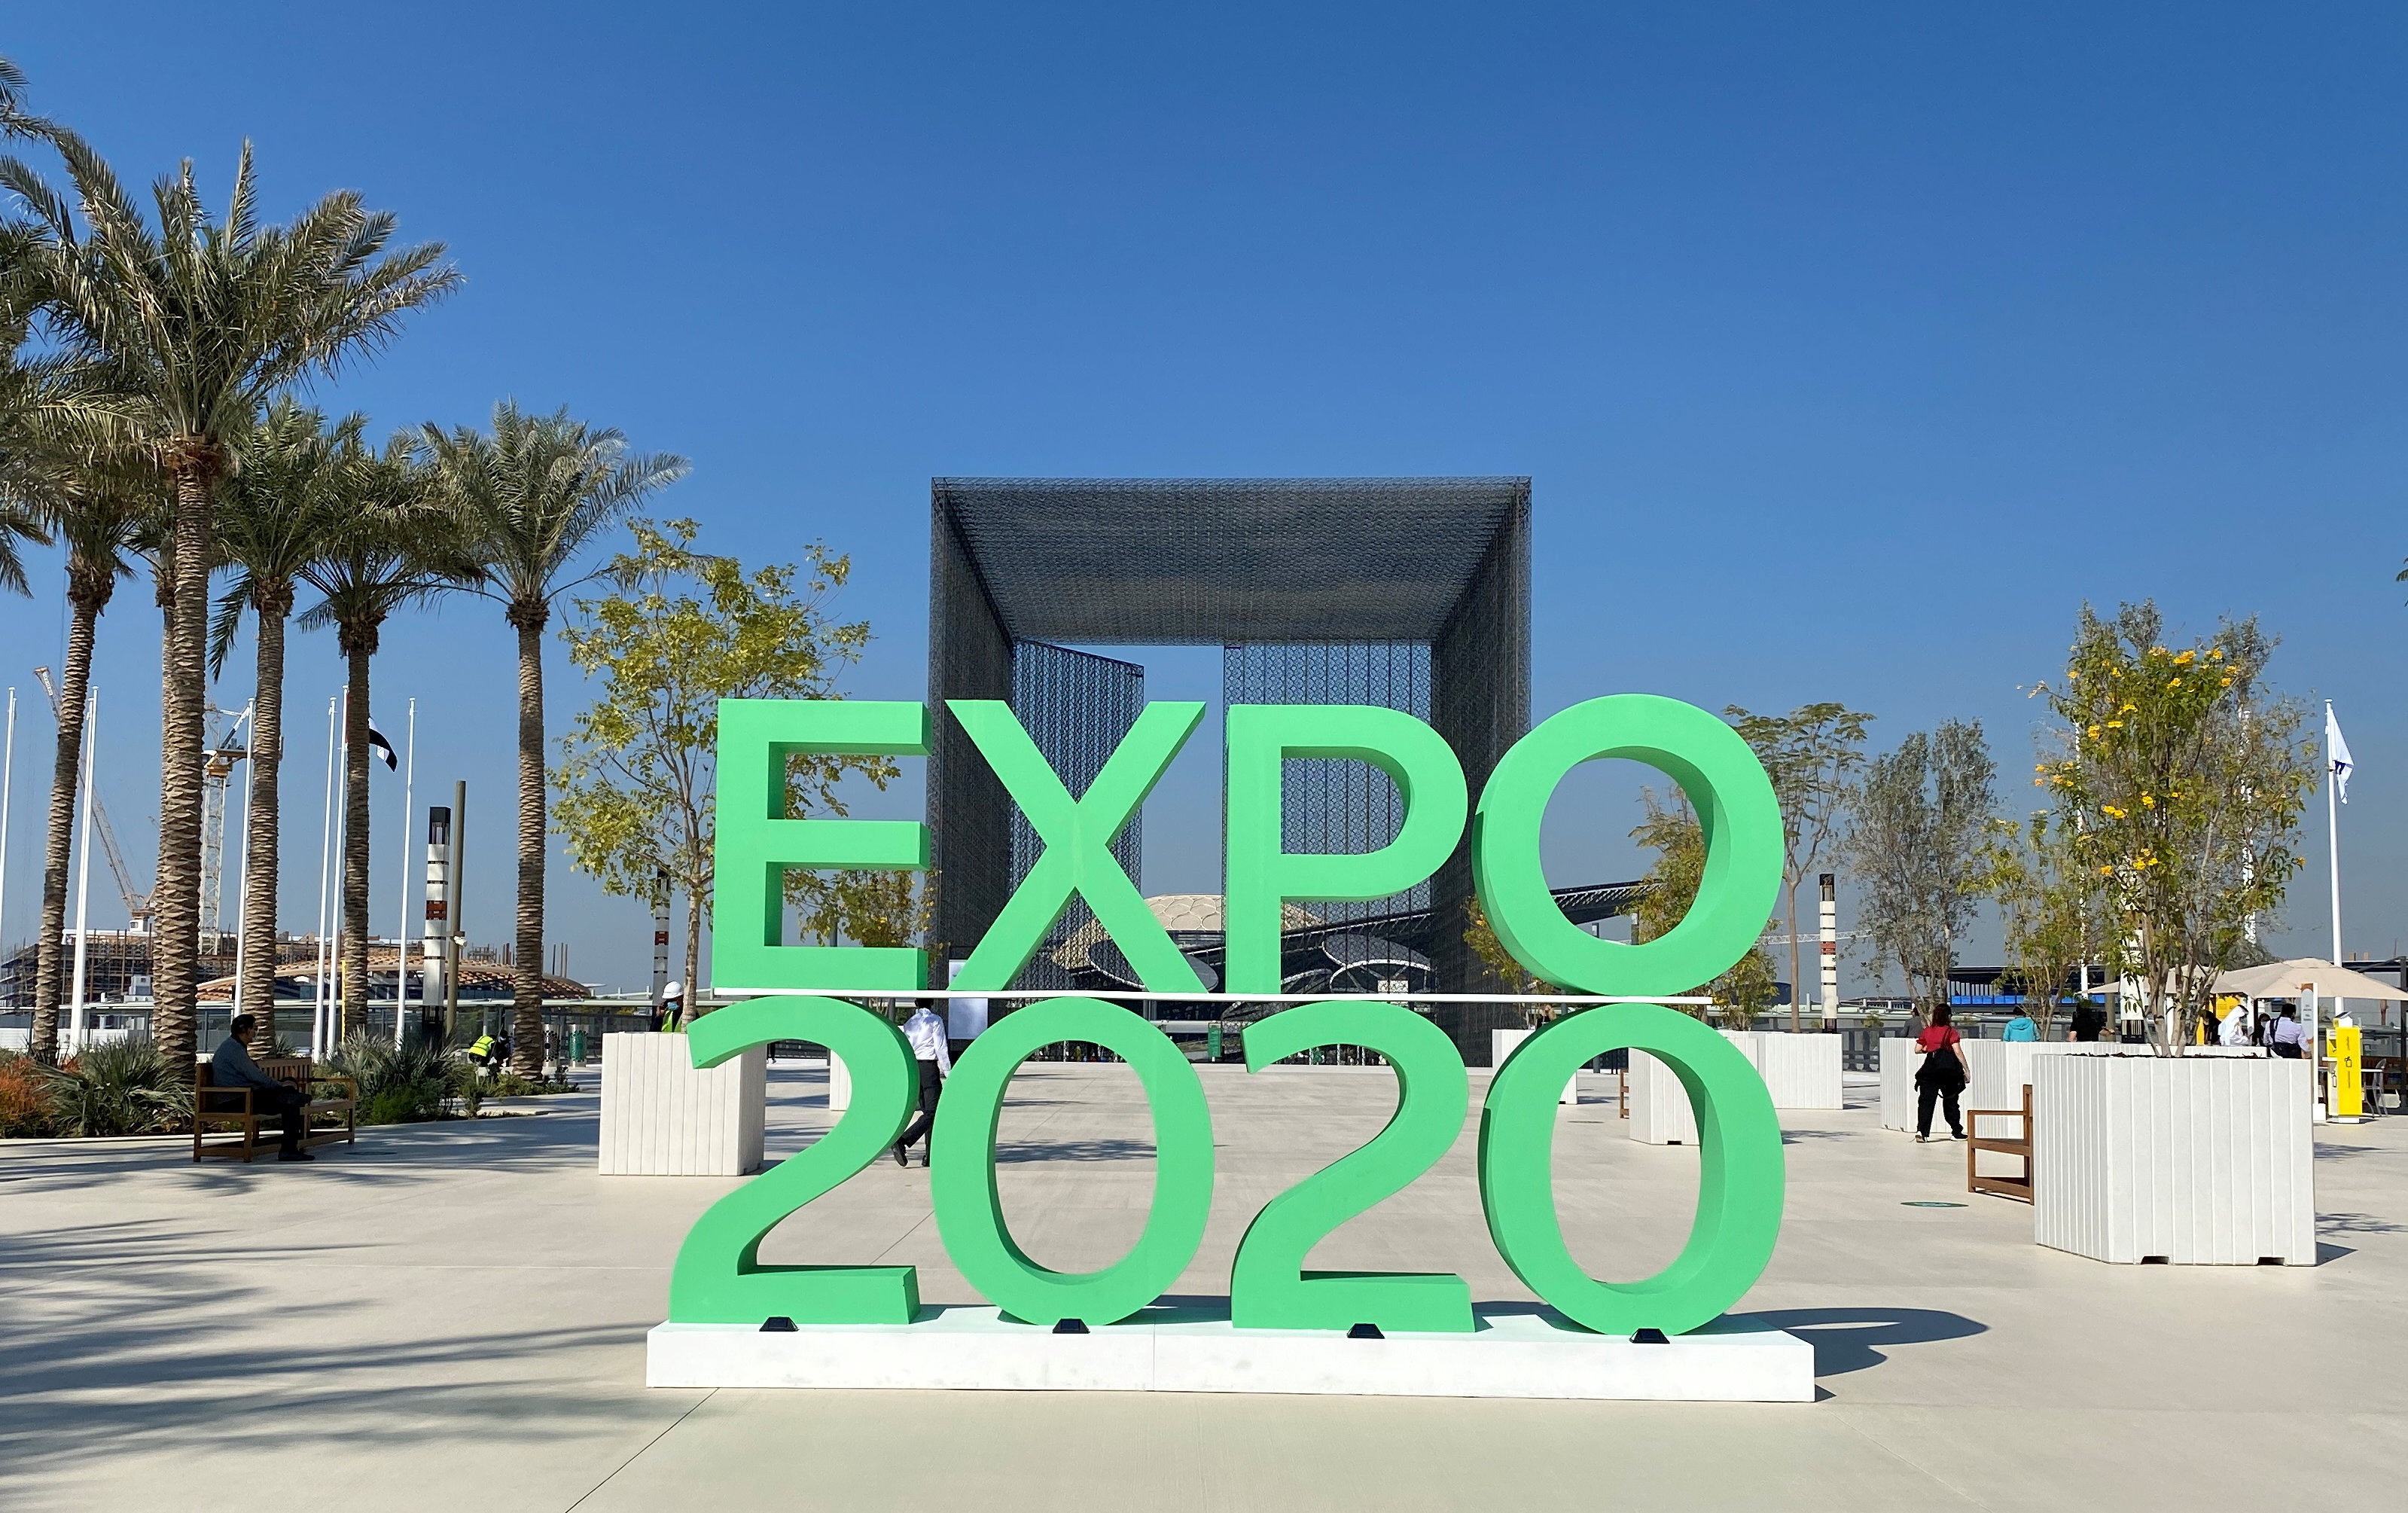 The sign of Dubai Expo 2020 is seen at the entrance of the site in Dubai, United Arab Emirates January 16, 2021. REUTERS/Rula Rouhana/File Photo